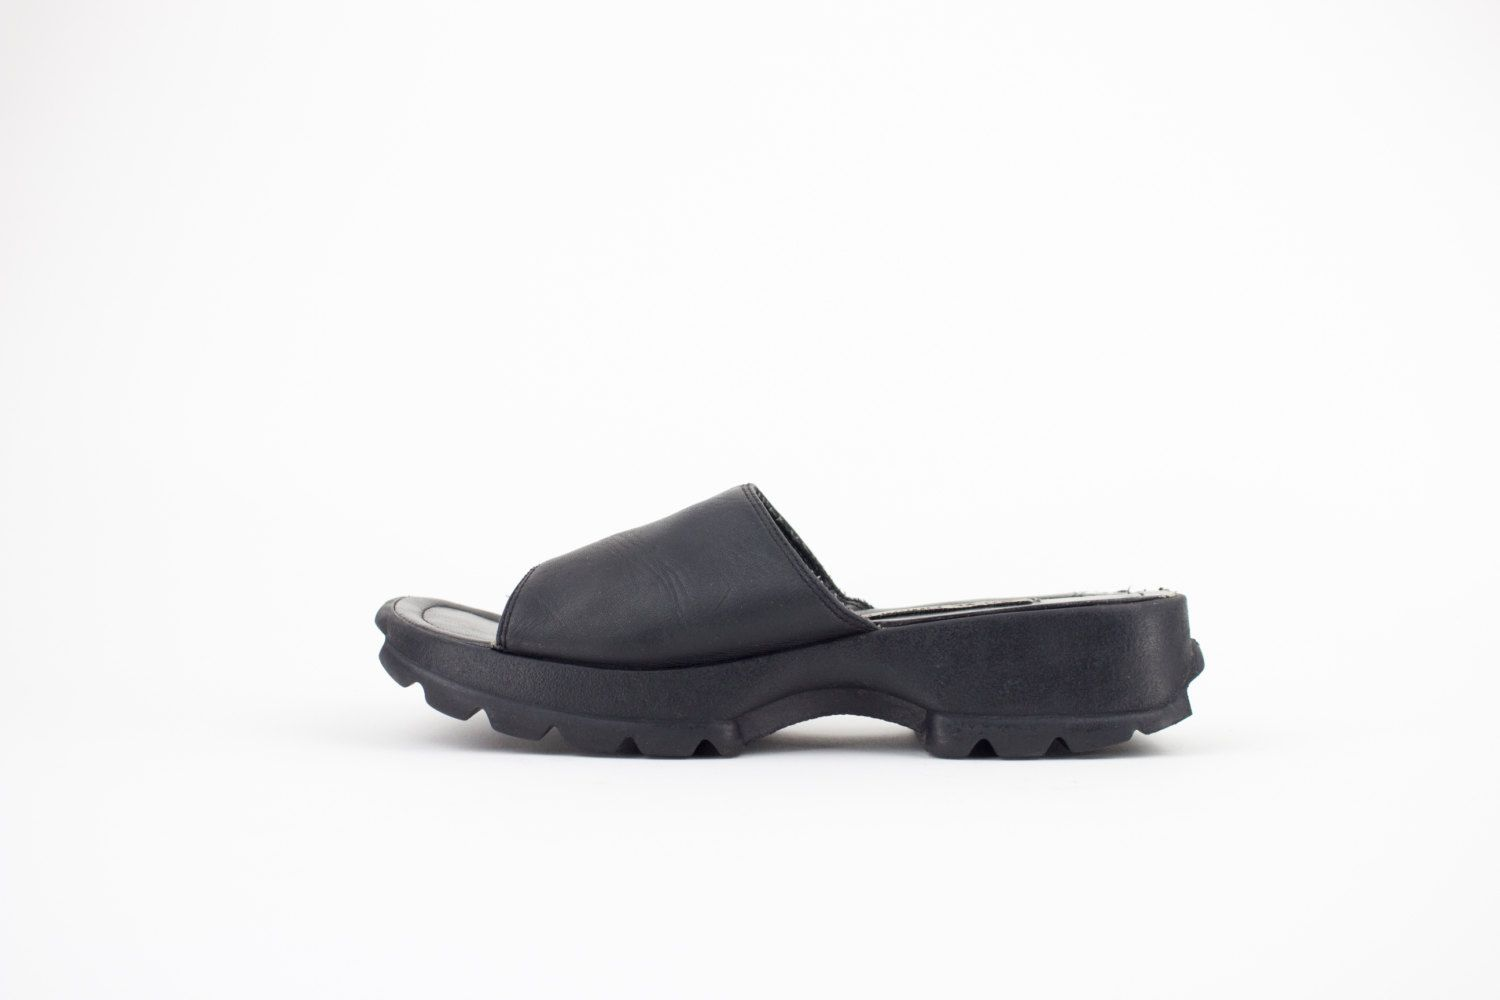 90s Vintage Steve Madden Sandals | Chunky Slides | Womens Size US 6 UK 4  Euro